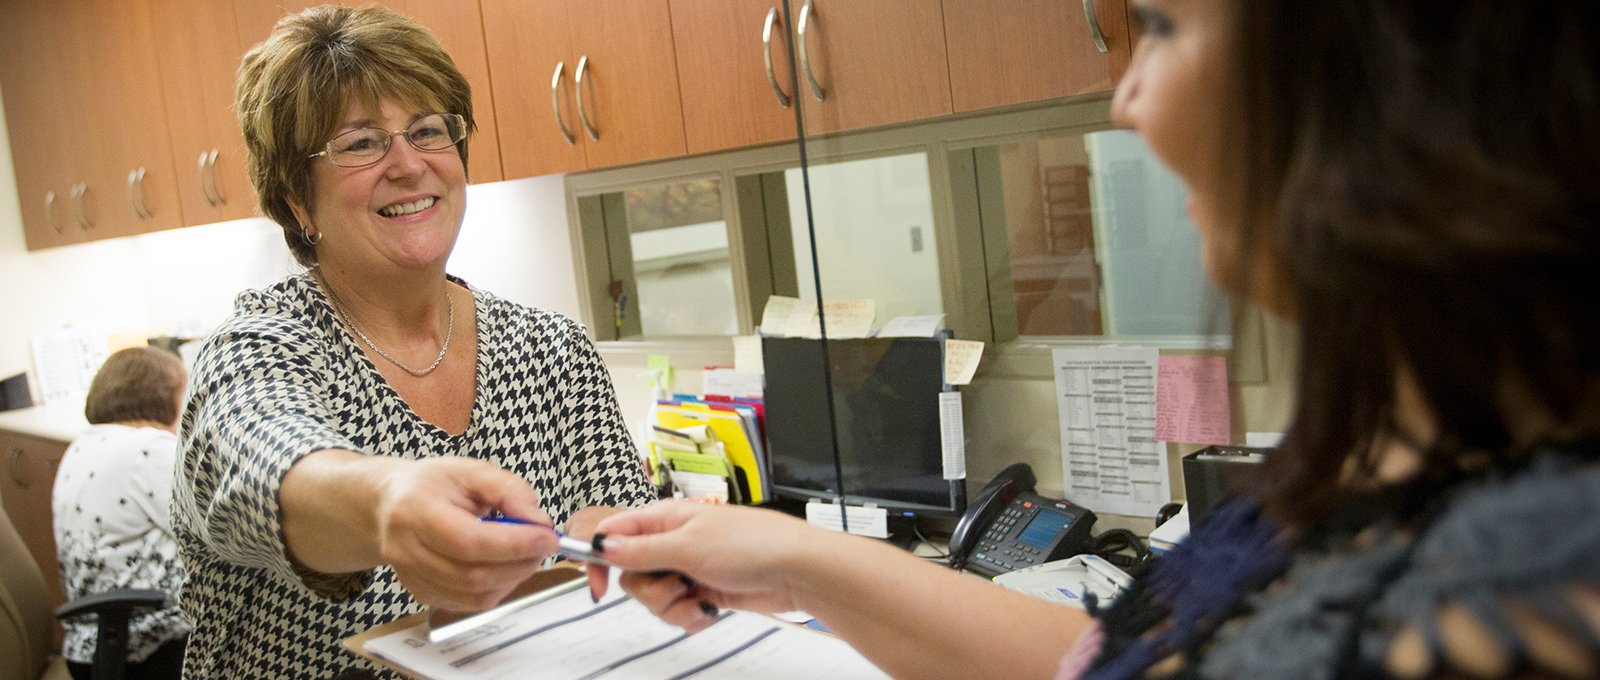 Smiling office assistant handing form to patient